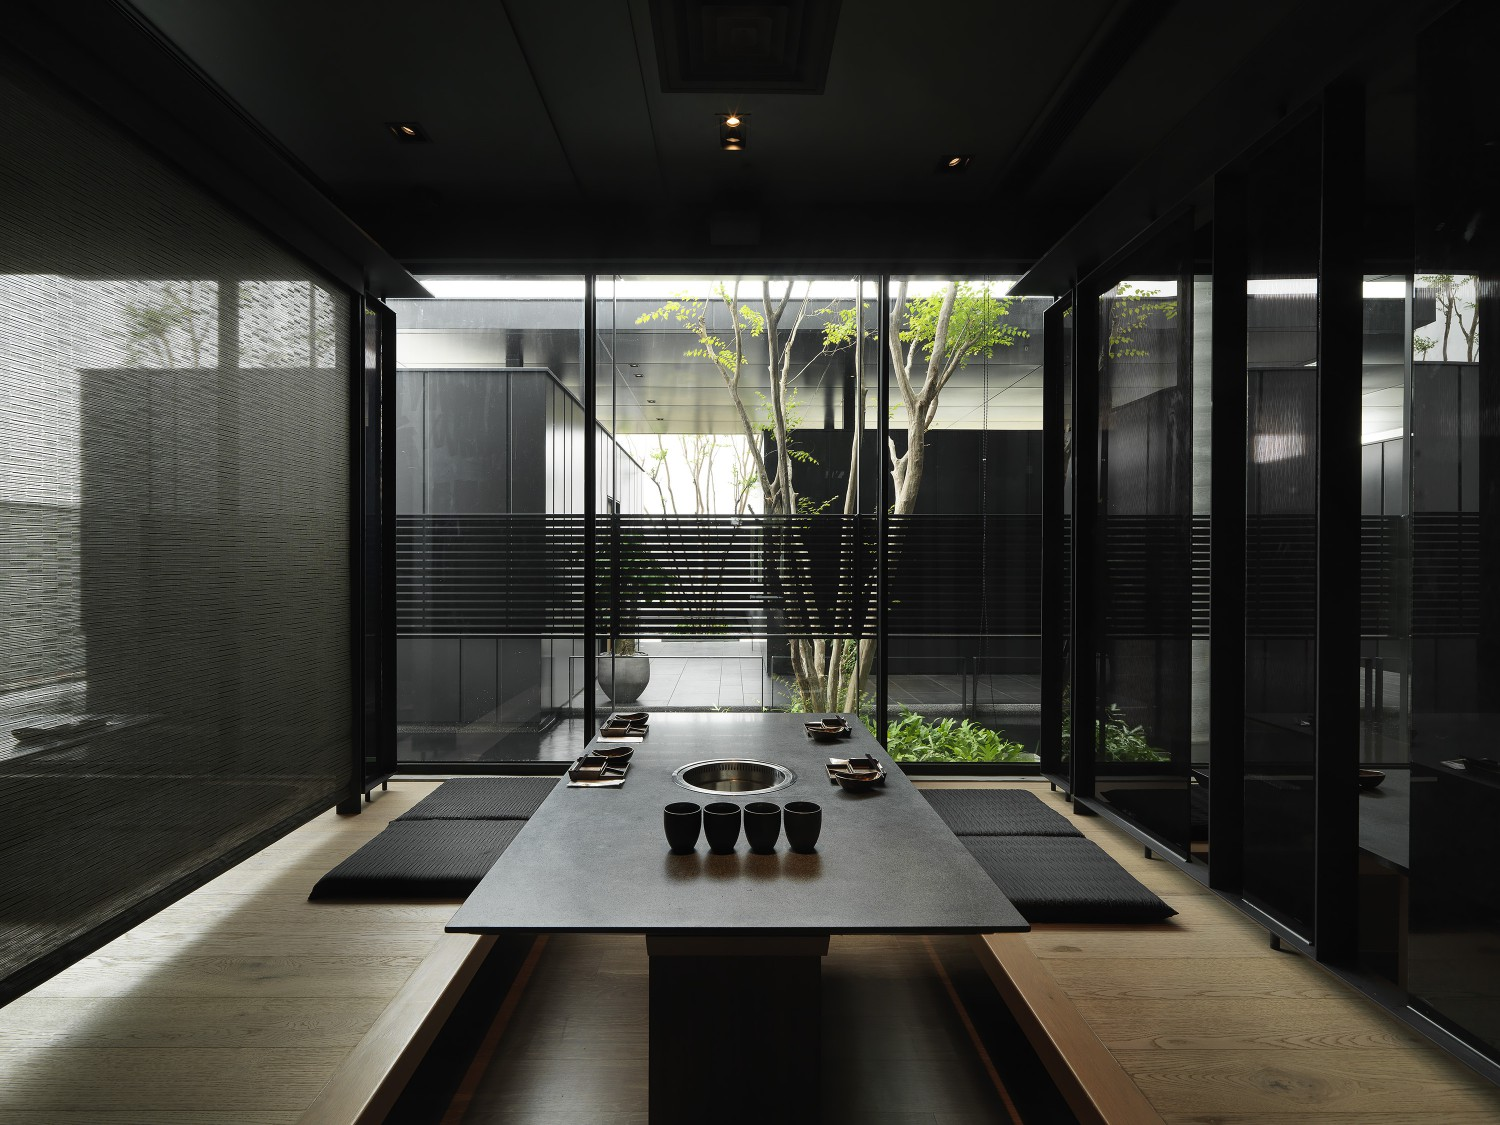 Throughout the restaurant there are scattered green spaces that bring nature inside for all to enjoy. Moooten Studio / Qimin Wu